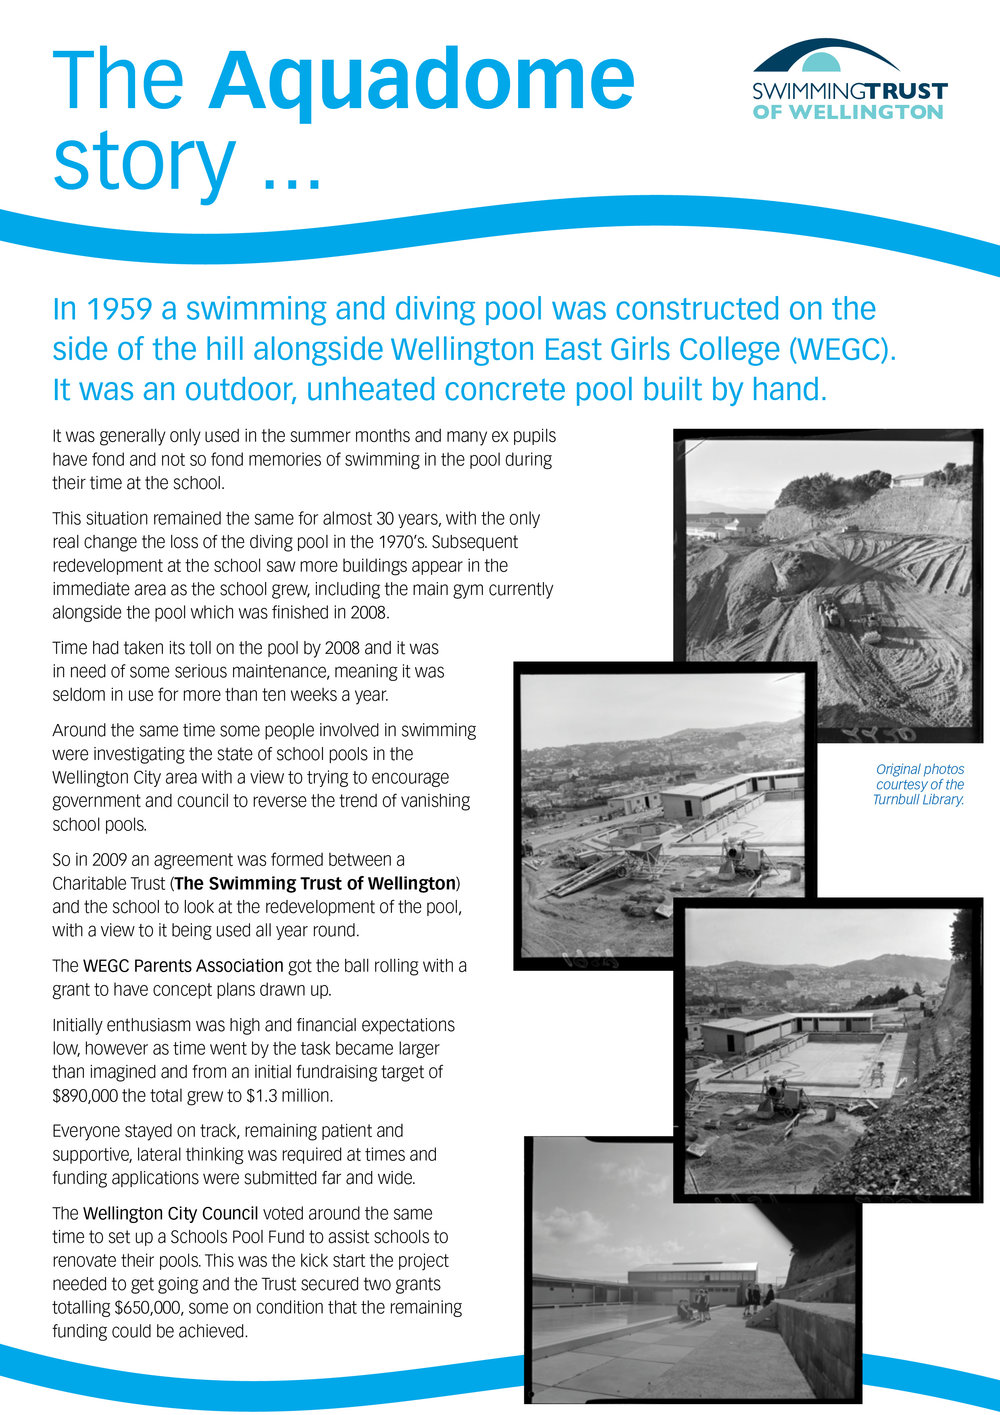 The Aquadome Story p1.jpg